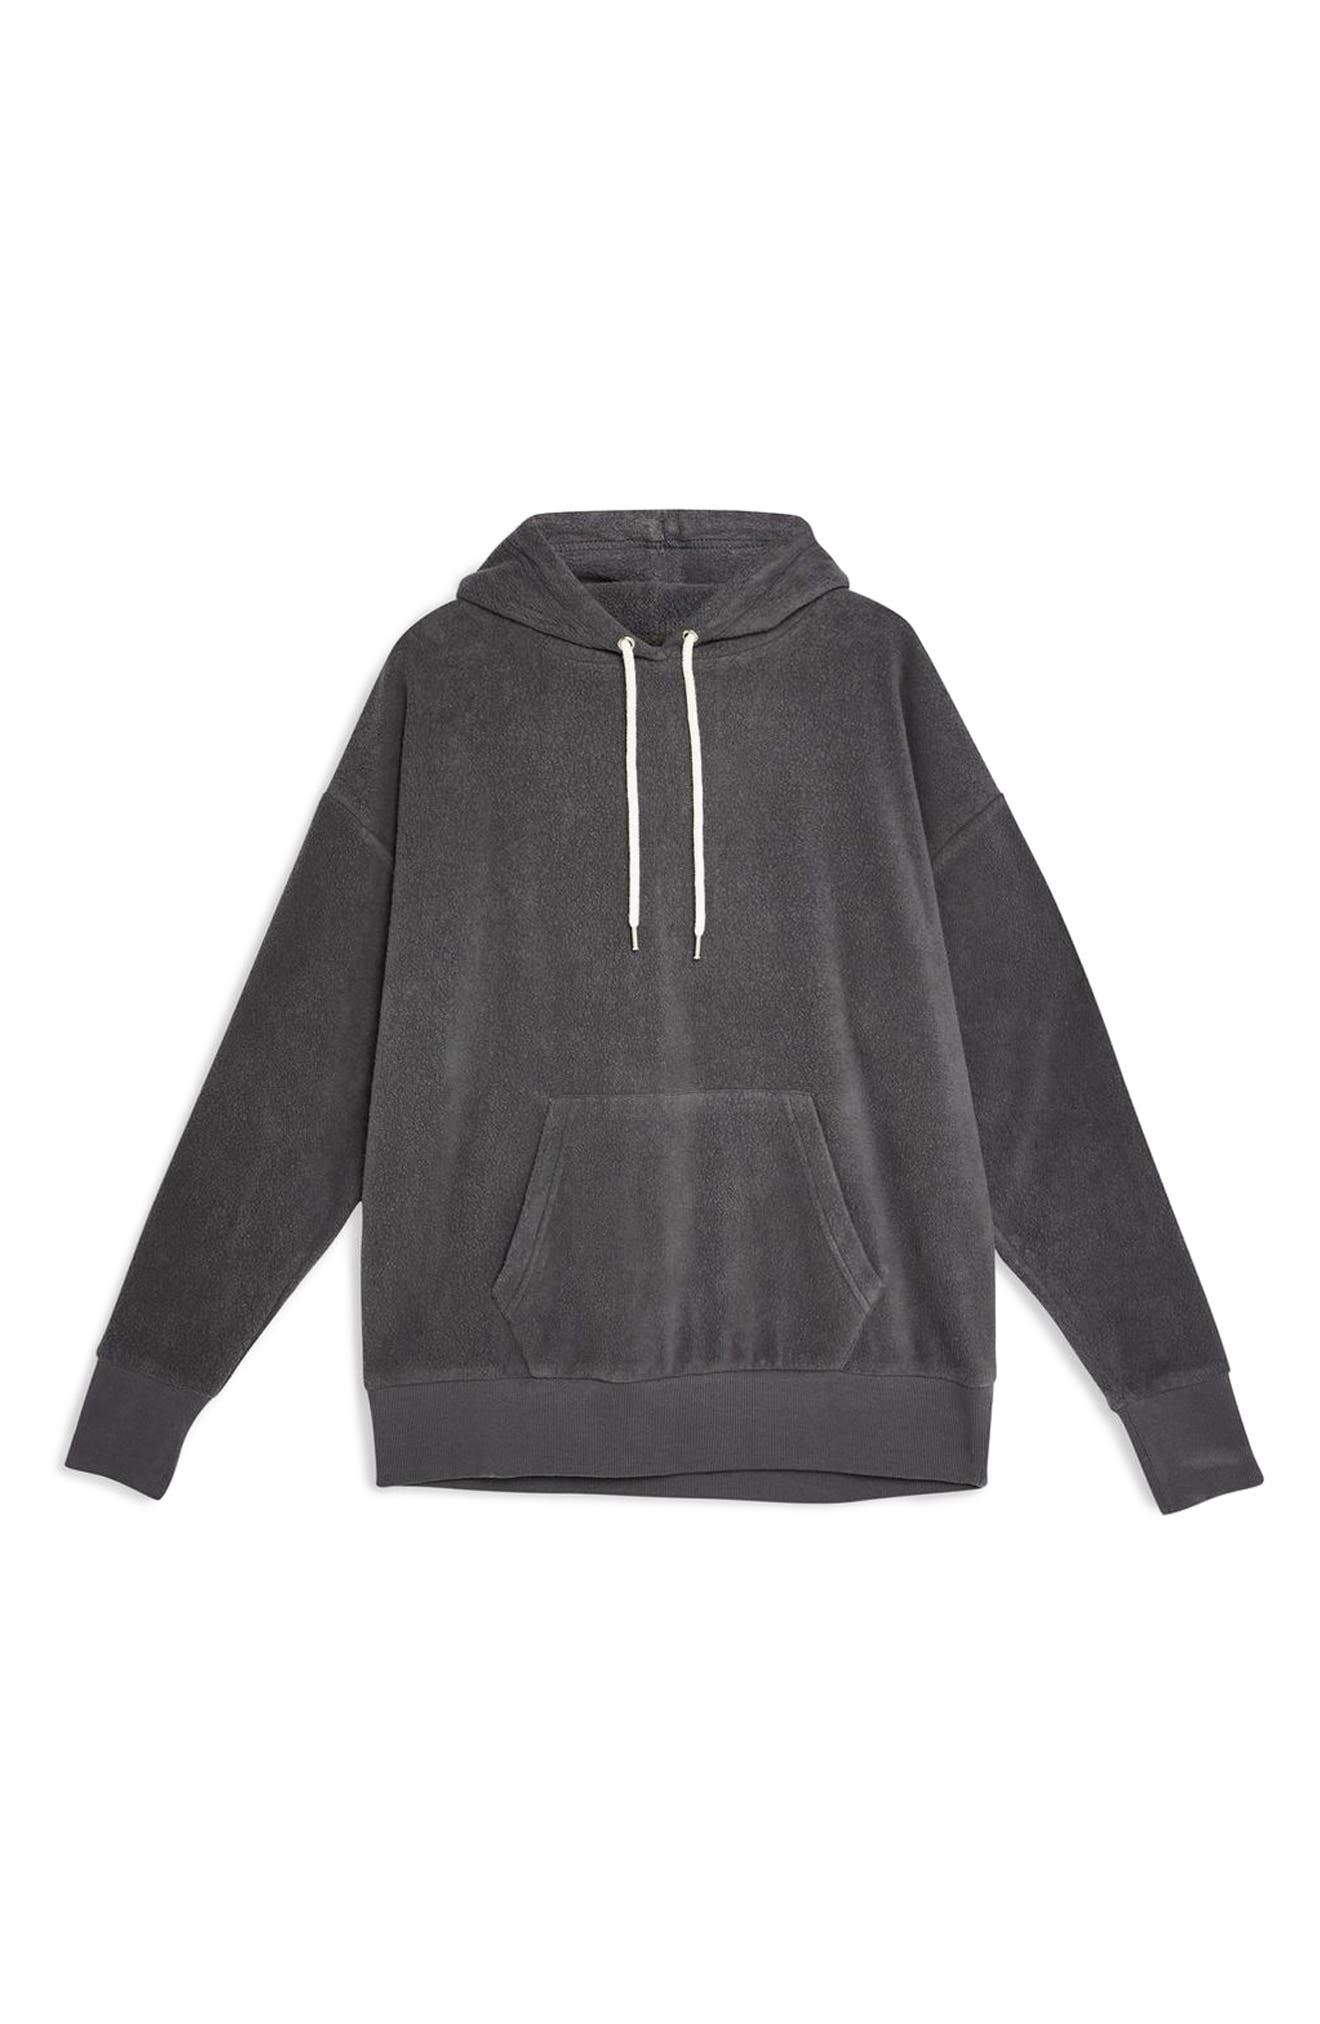 Bobbly Textured Hoodie,                             Alternate thumbnail 3, color,                             CHARCOAL